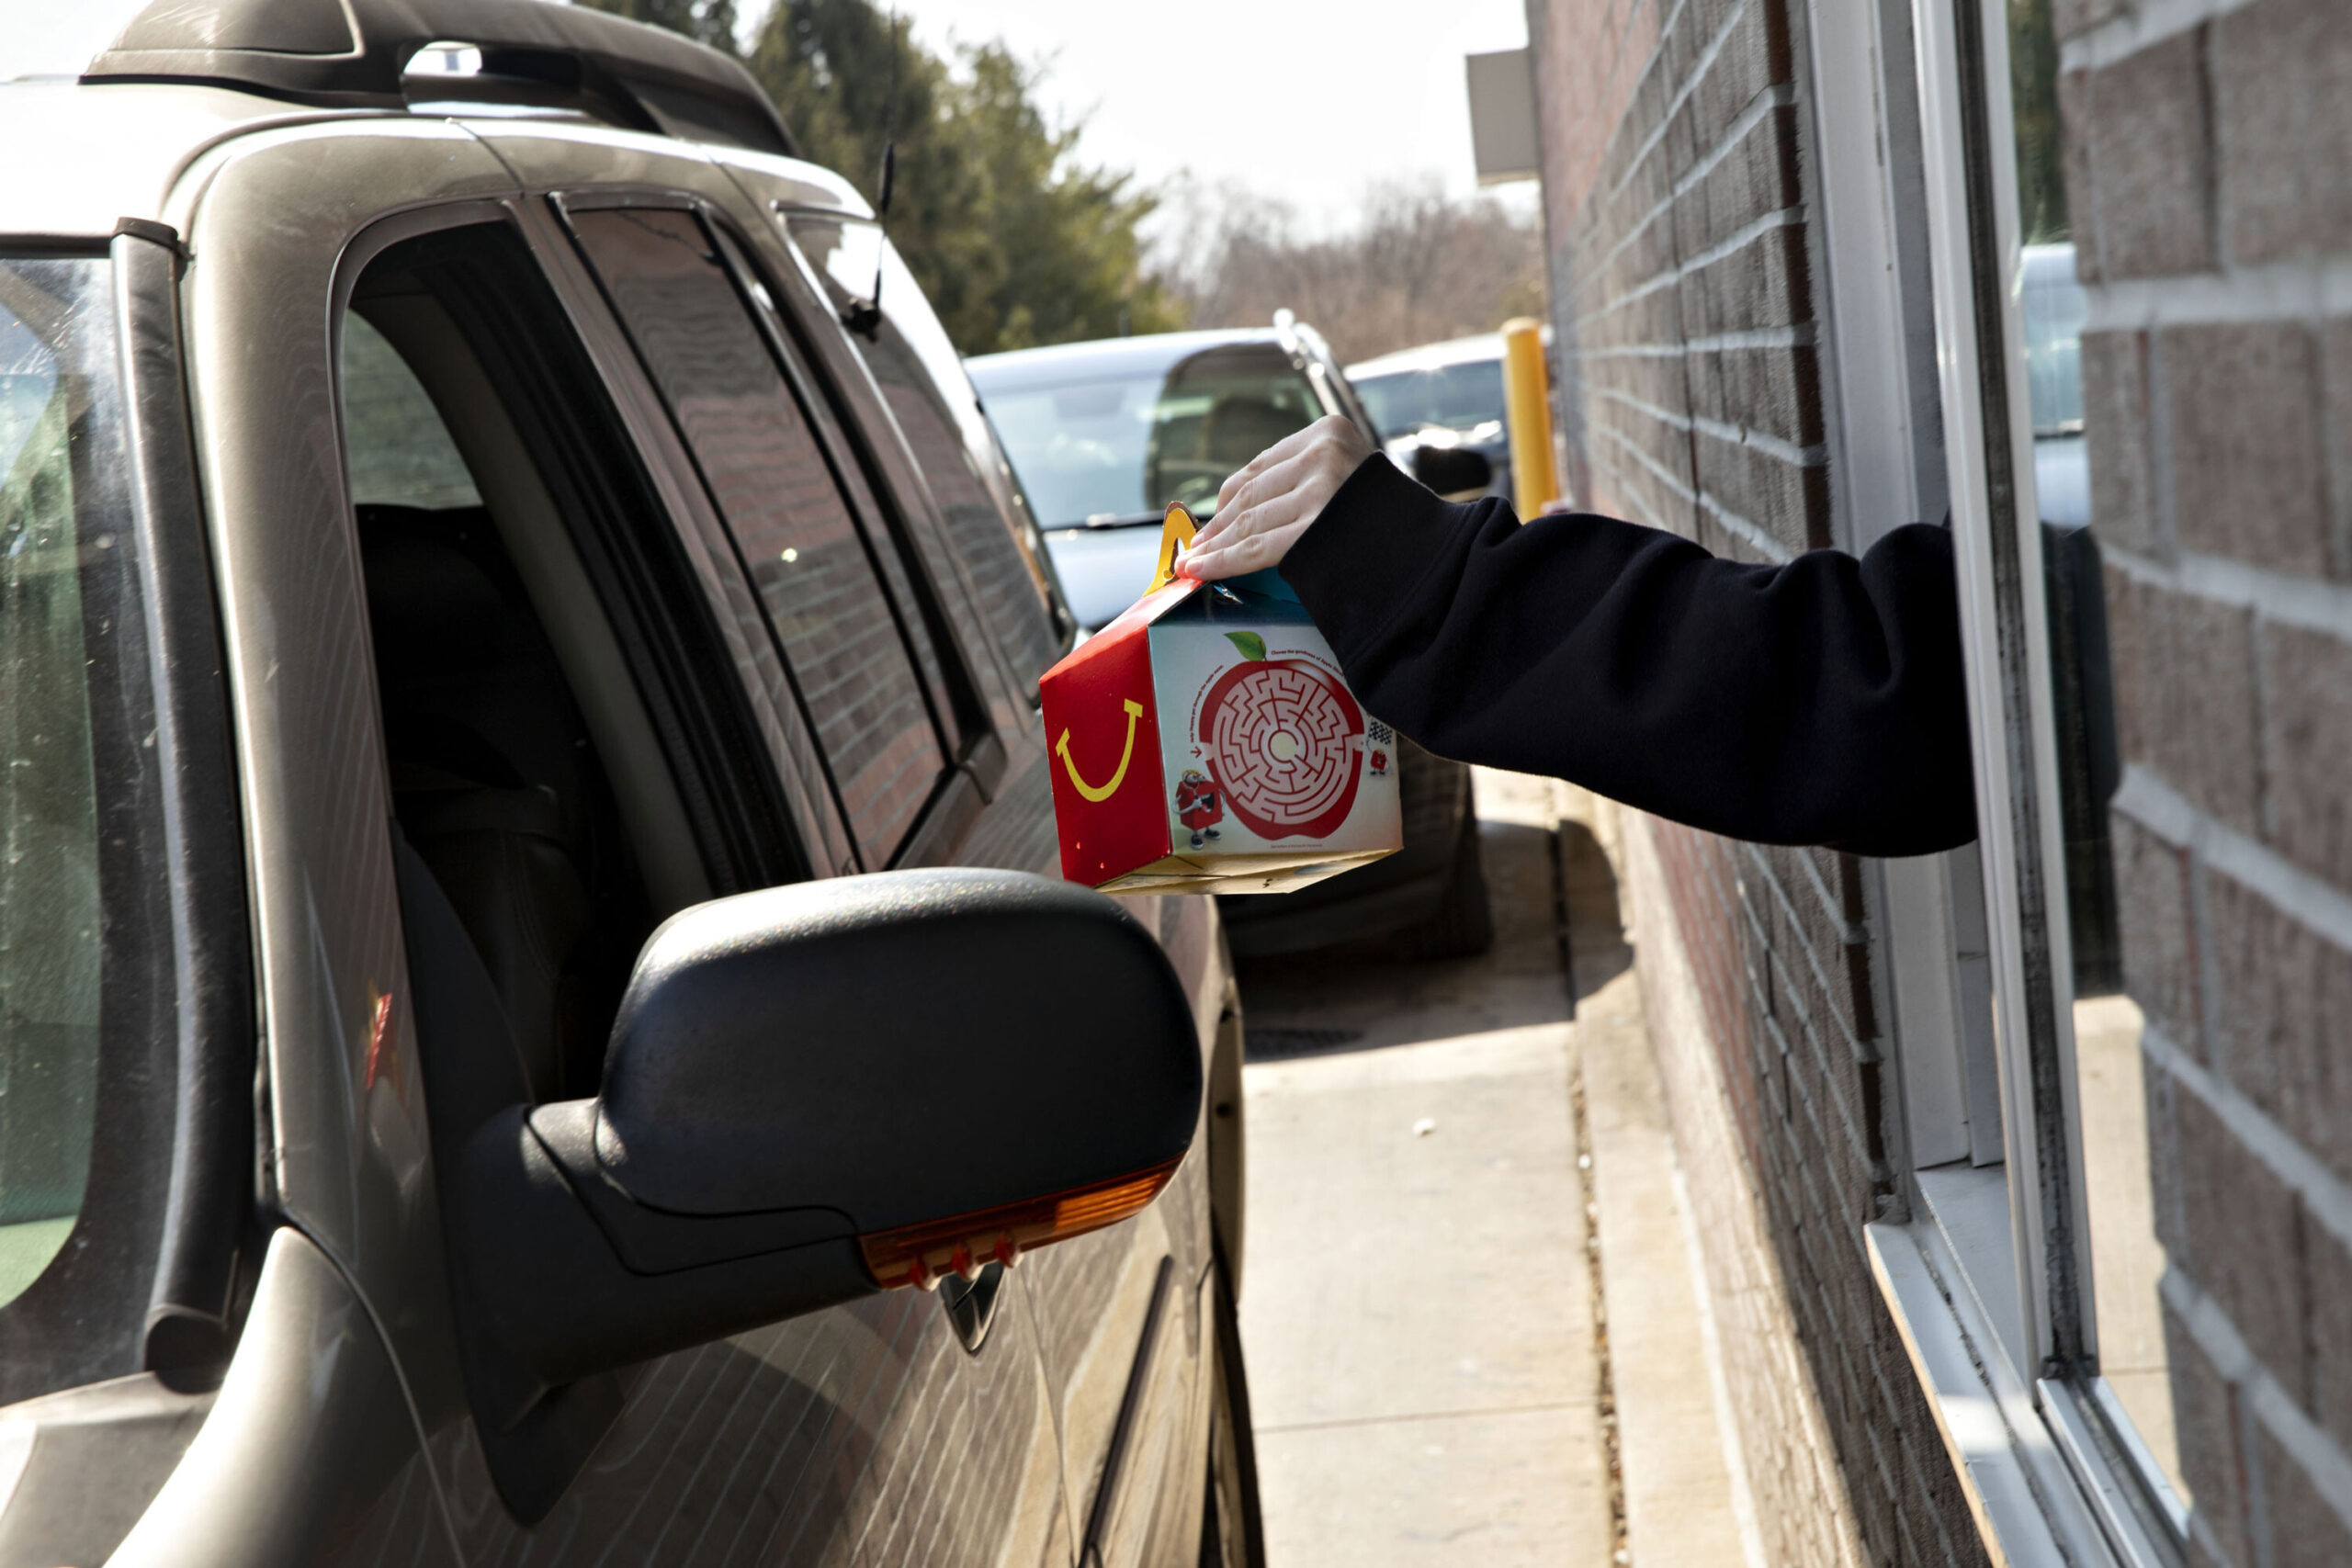 <i>Daniel Acker/Bloomberg/Getty Images</i><br/>McDonald's is making changes to its Happy Meal toys.